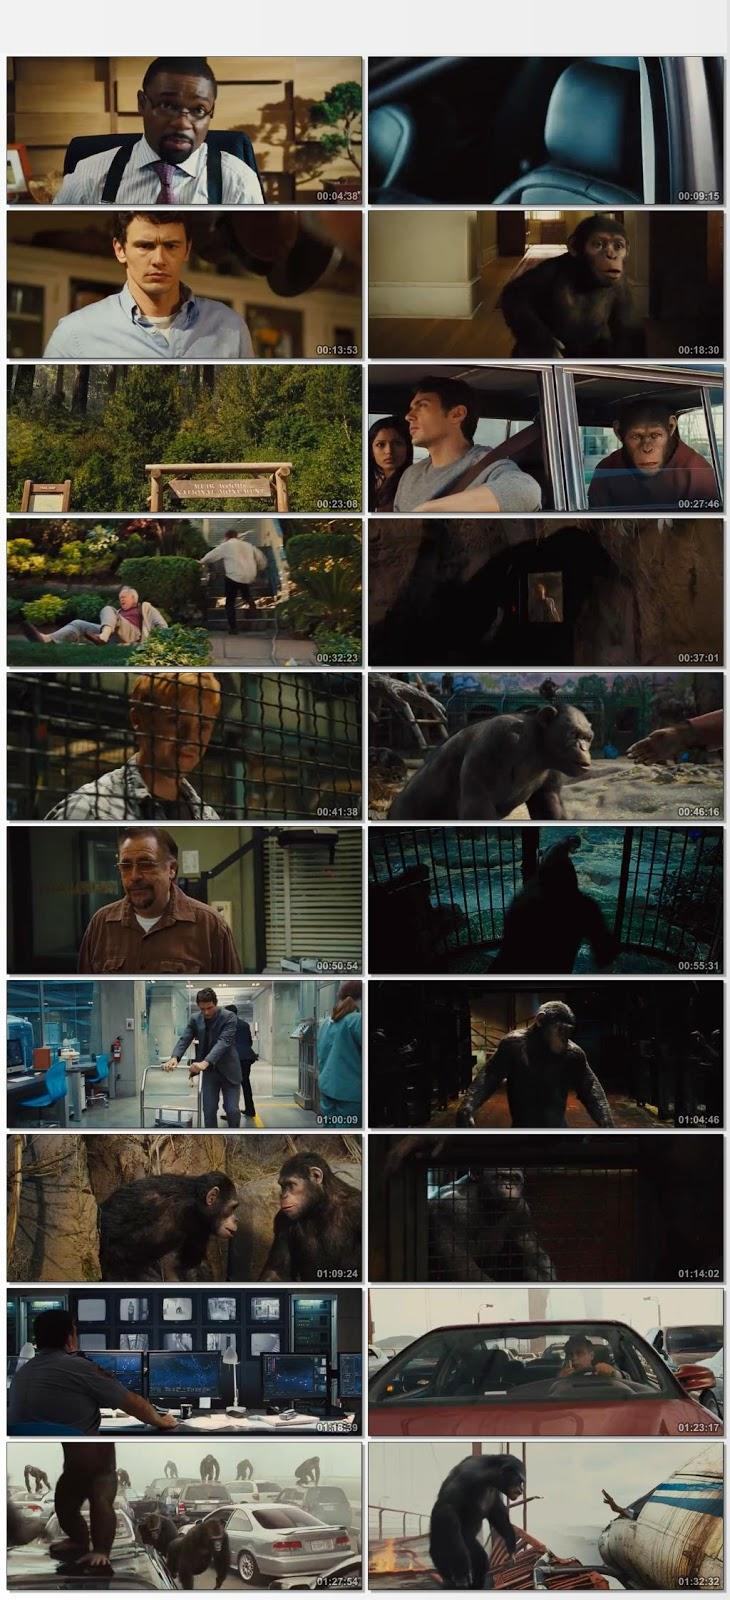 12 Rise of the Planet of the Apes 2011 300MB Full Movie Hindi Dubbed Dual Audio 480P HQ